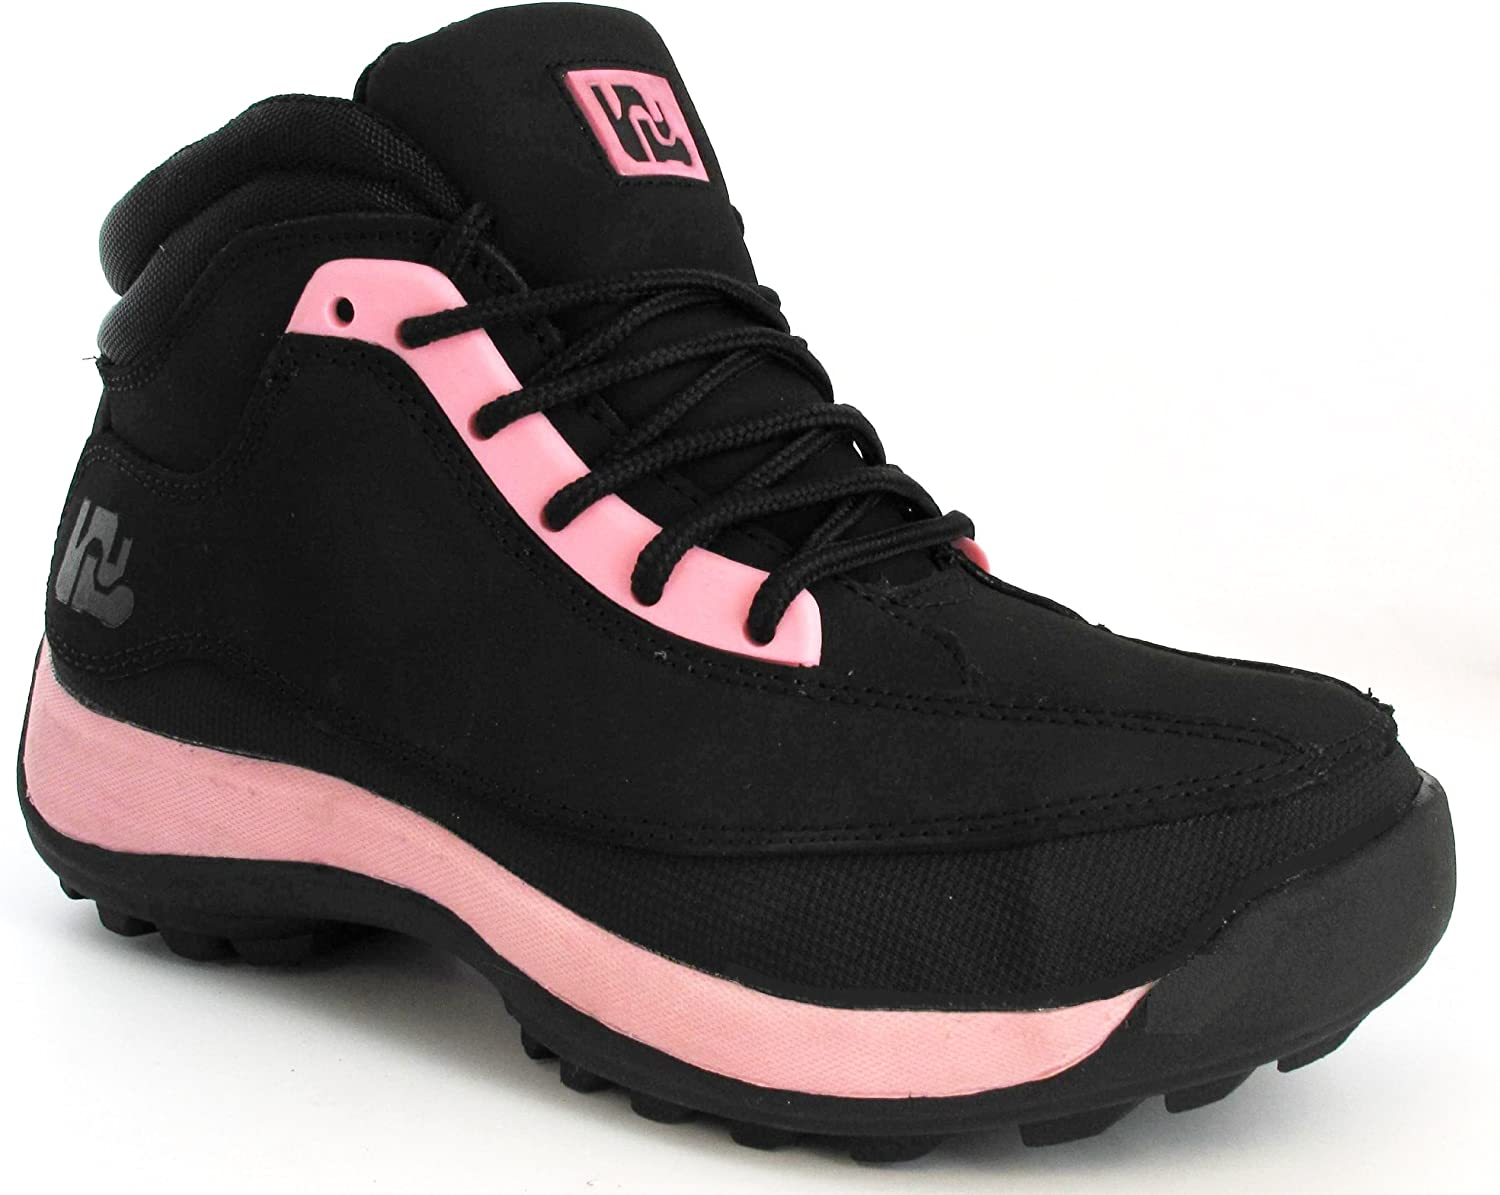 LADIES SAFETY WOMENS LEATHER STEEL TOE